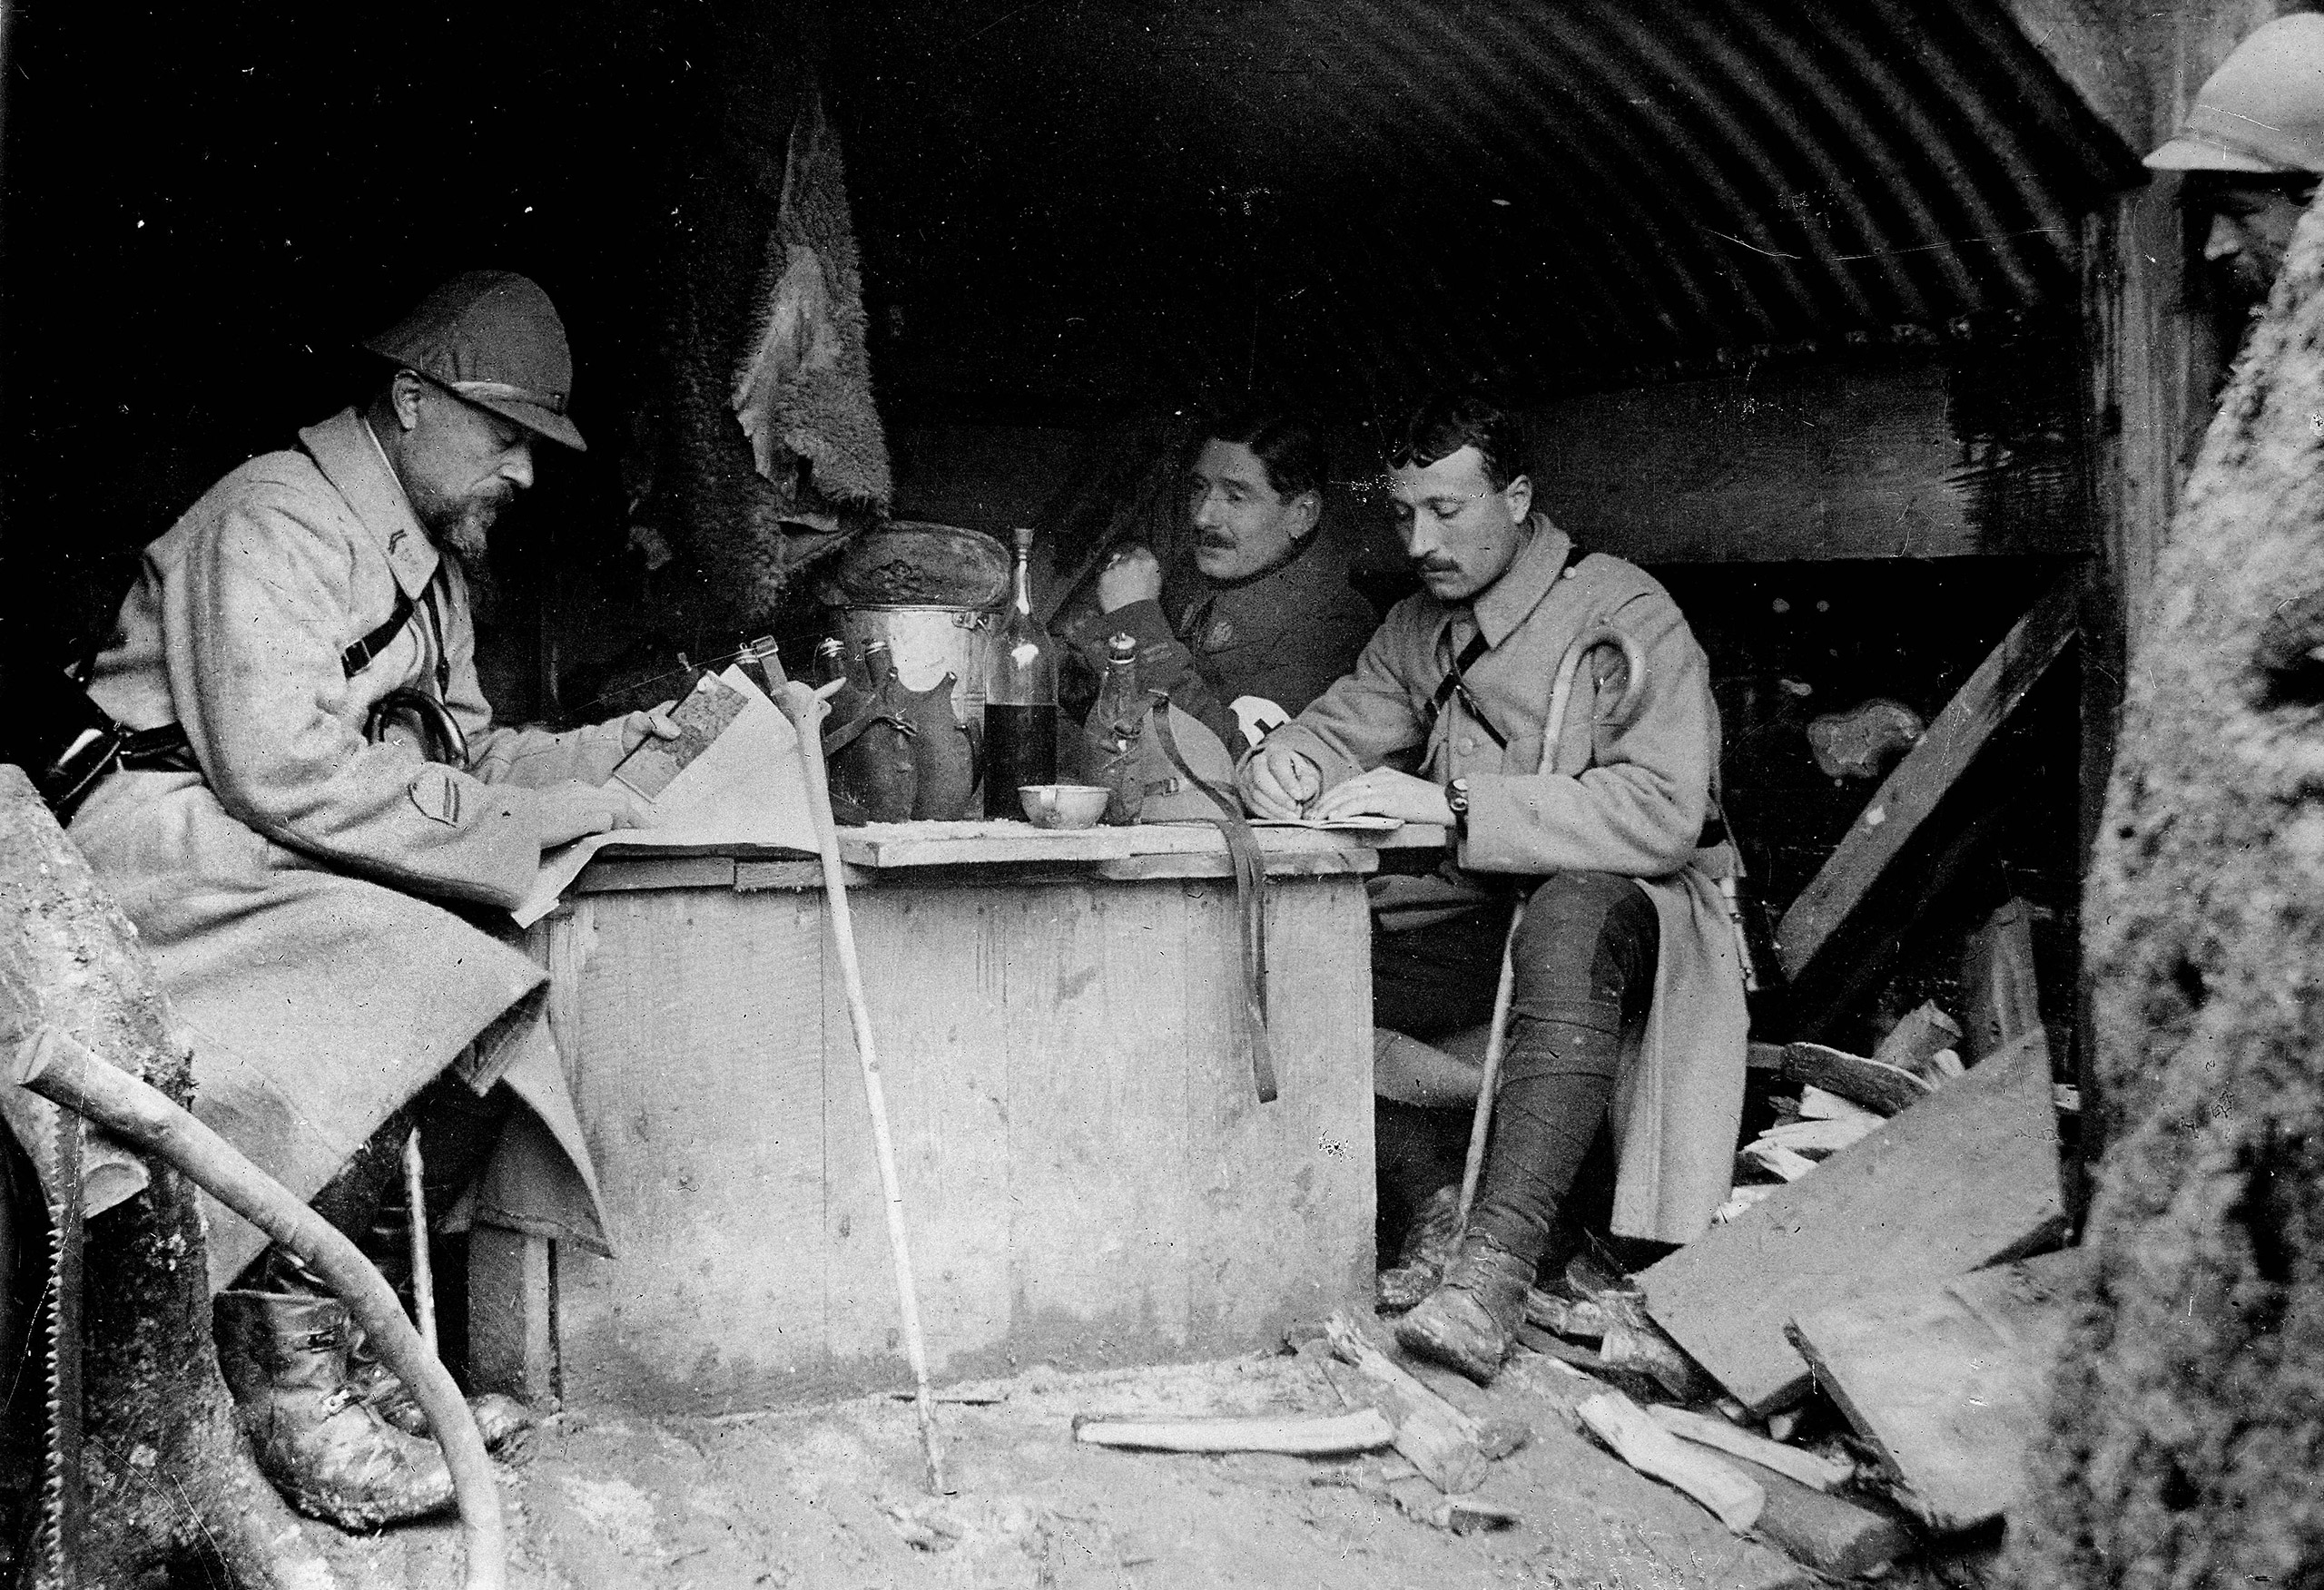 World War One, Battle of Verdun. Shelter made of corrugated iron and used as headquarters for French machine gunners near Verdun, 1916.